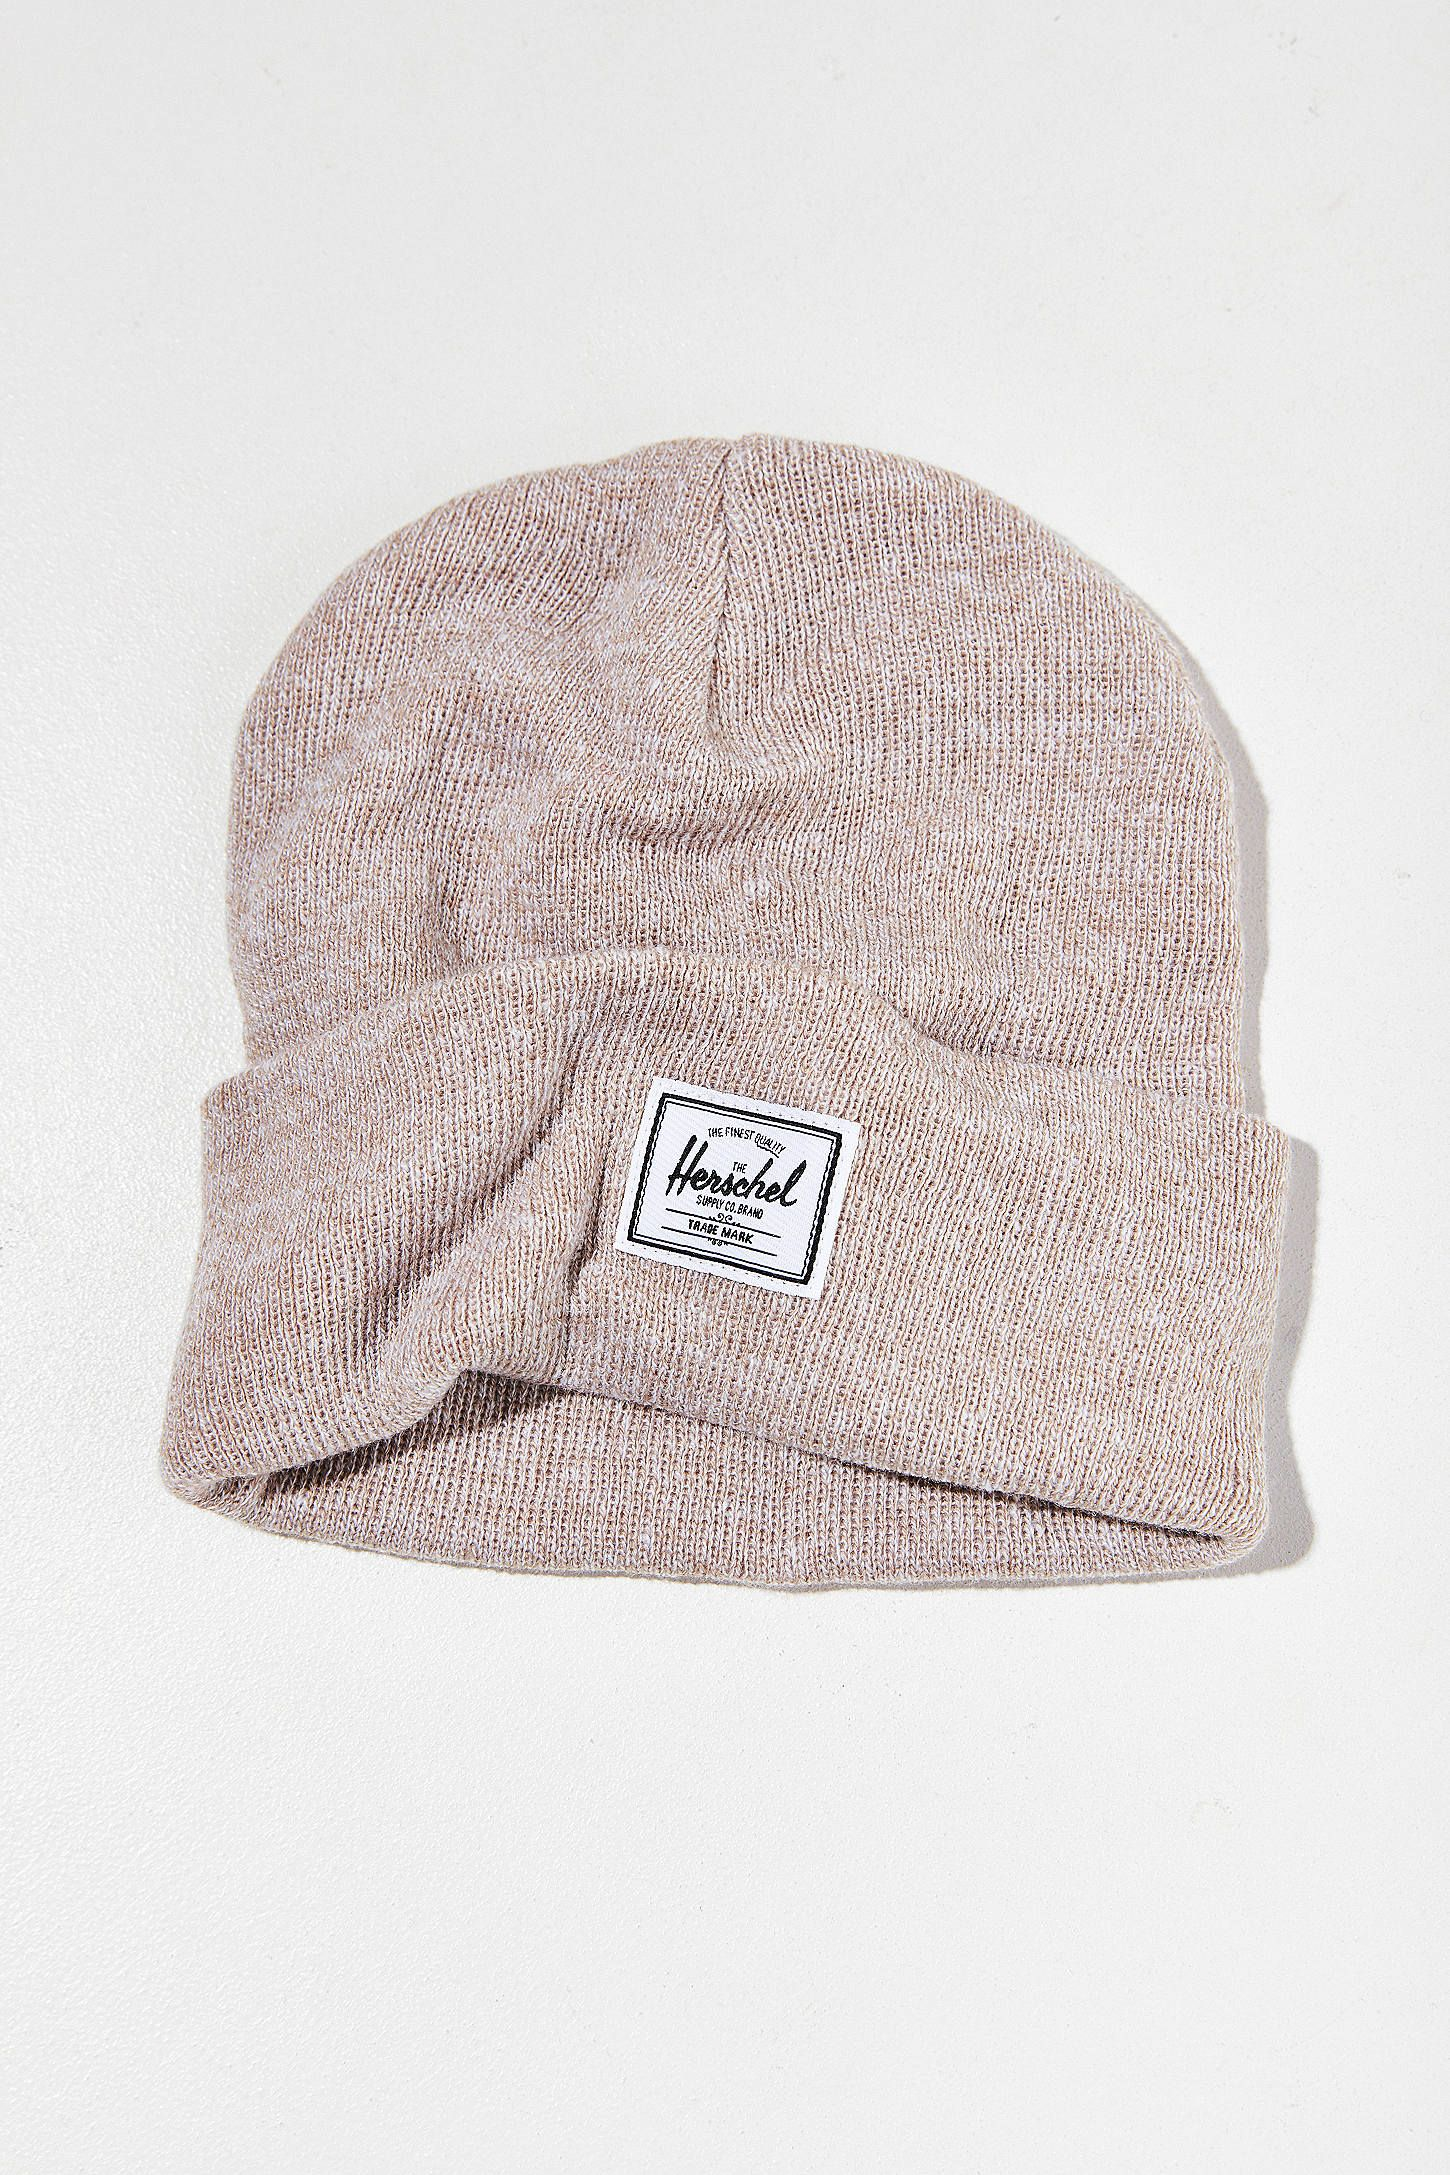 ad87a1d9 Shop Herschel Supply Co. Elmer Logo Knit Beanie at Urban Outfitters today.  We carry all the latest styles, colors and brands for you to choose from  right ...